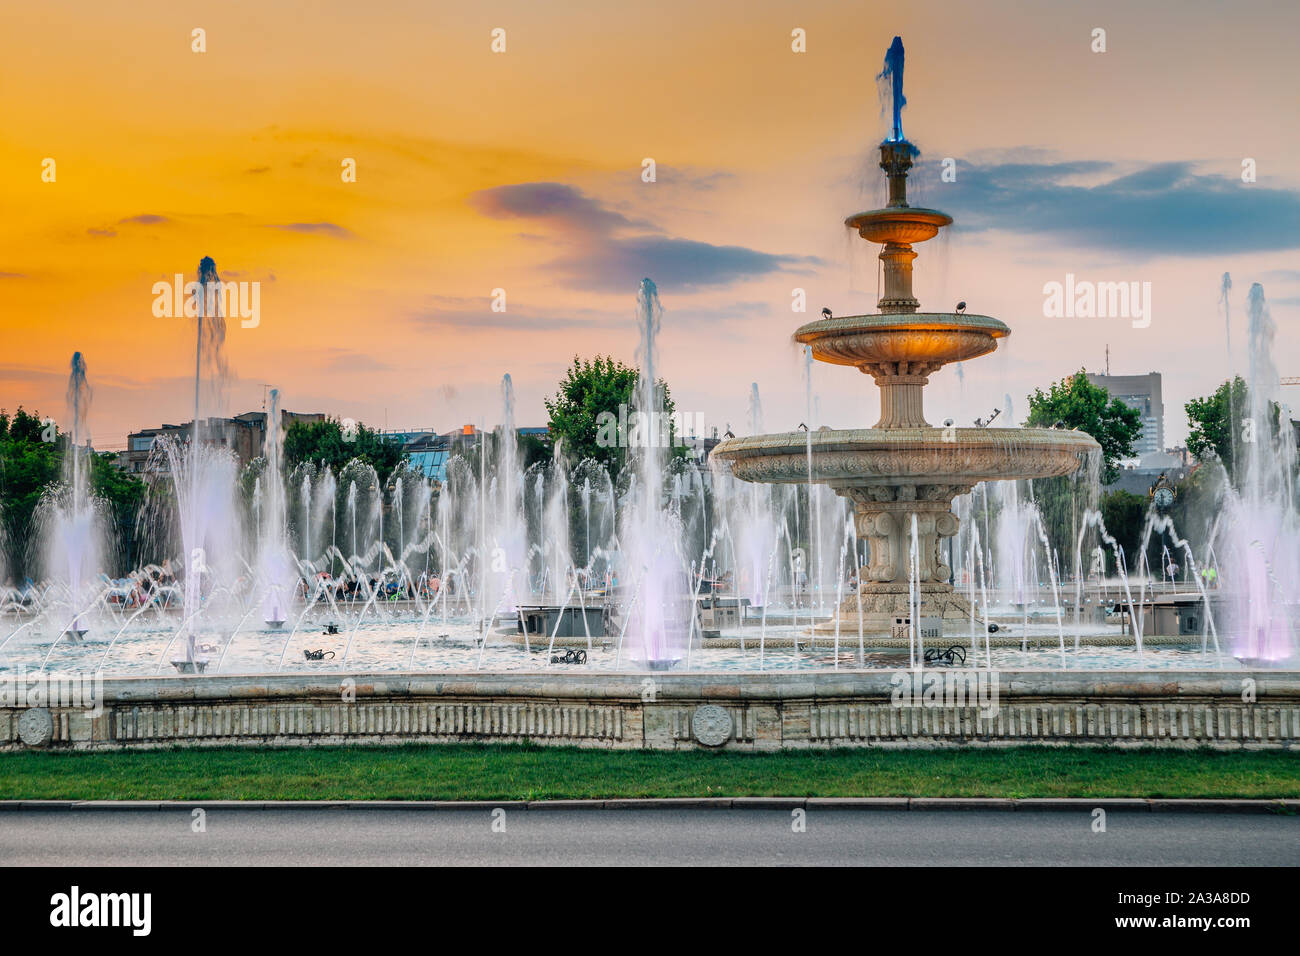 Fountains with sunset at Unirii Square in Bucharest, Romania Stock Photo